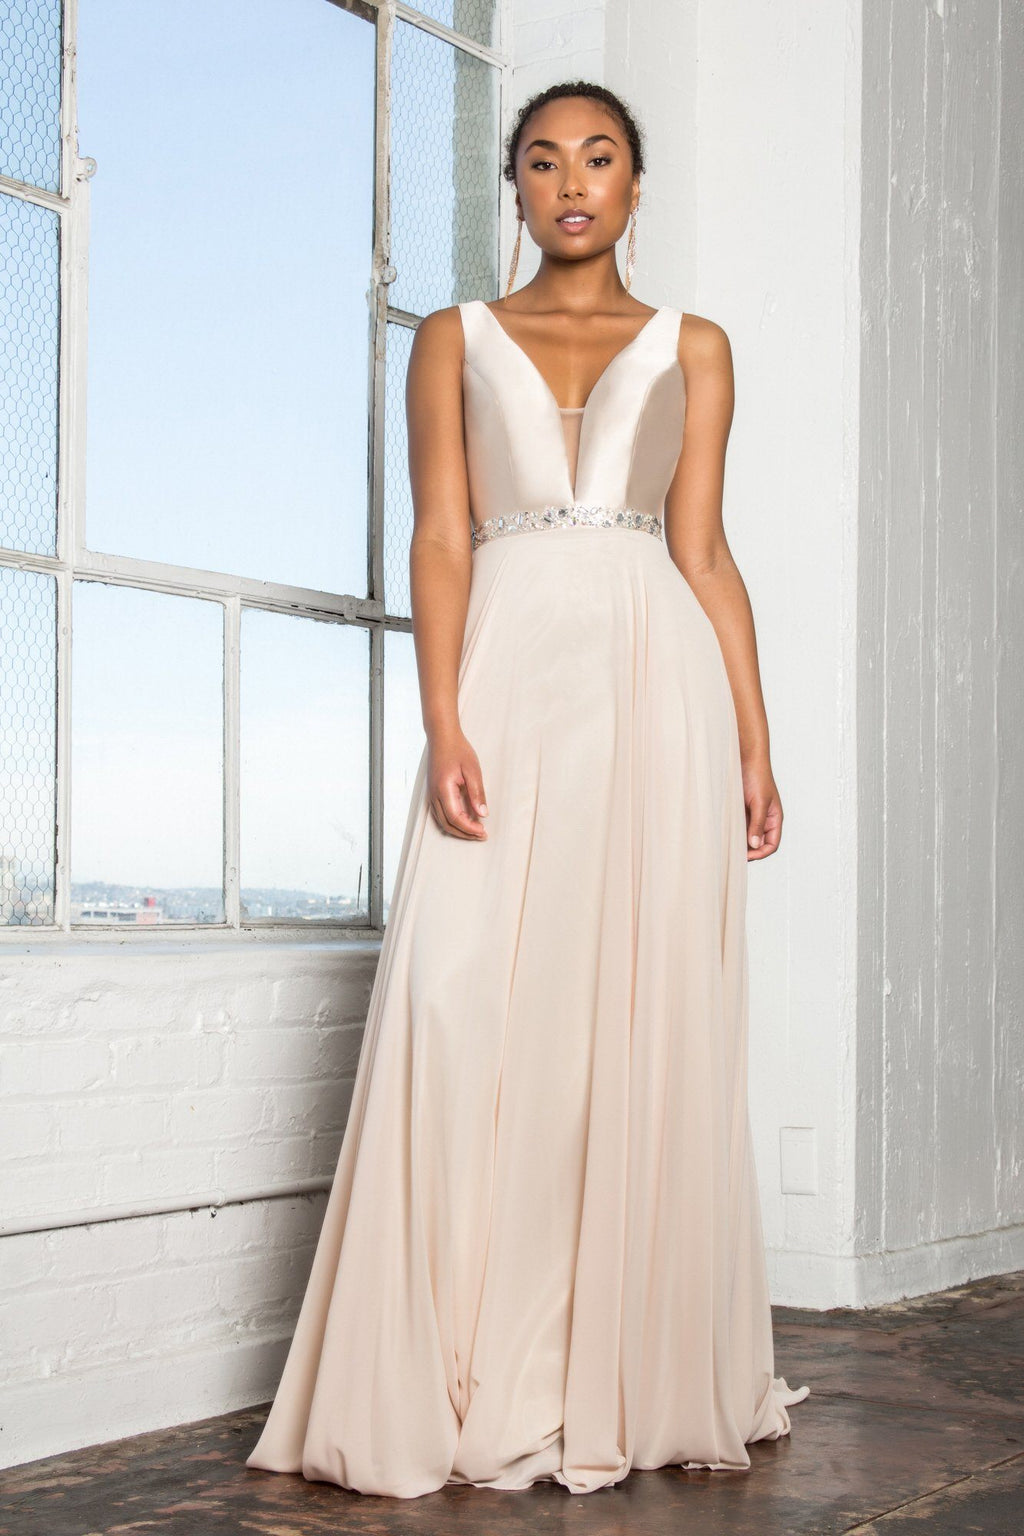 Stunning long chiffon bridesmaid dress #gl2293